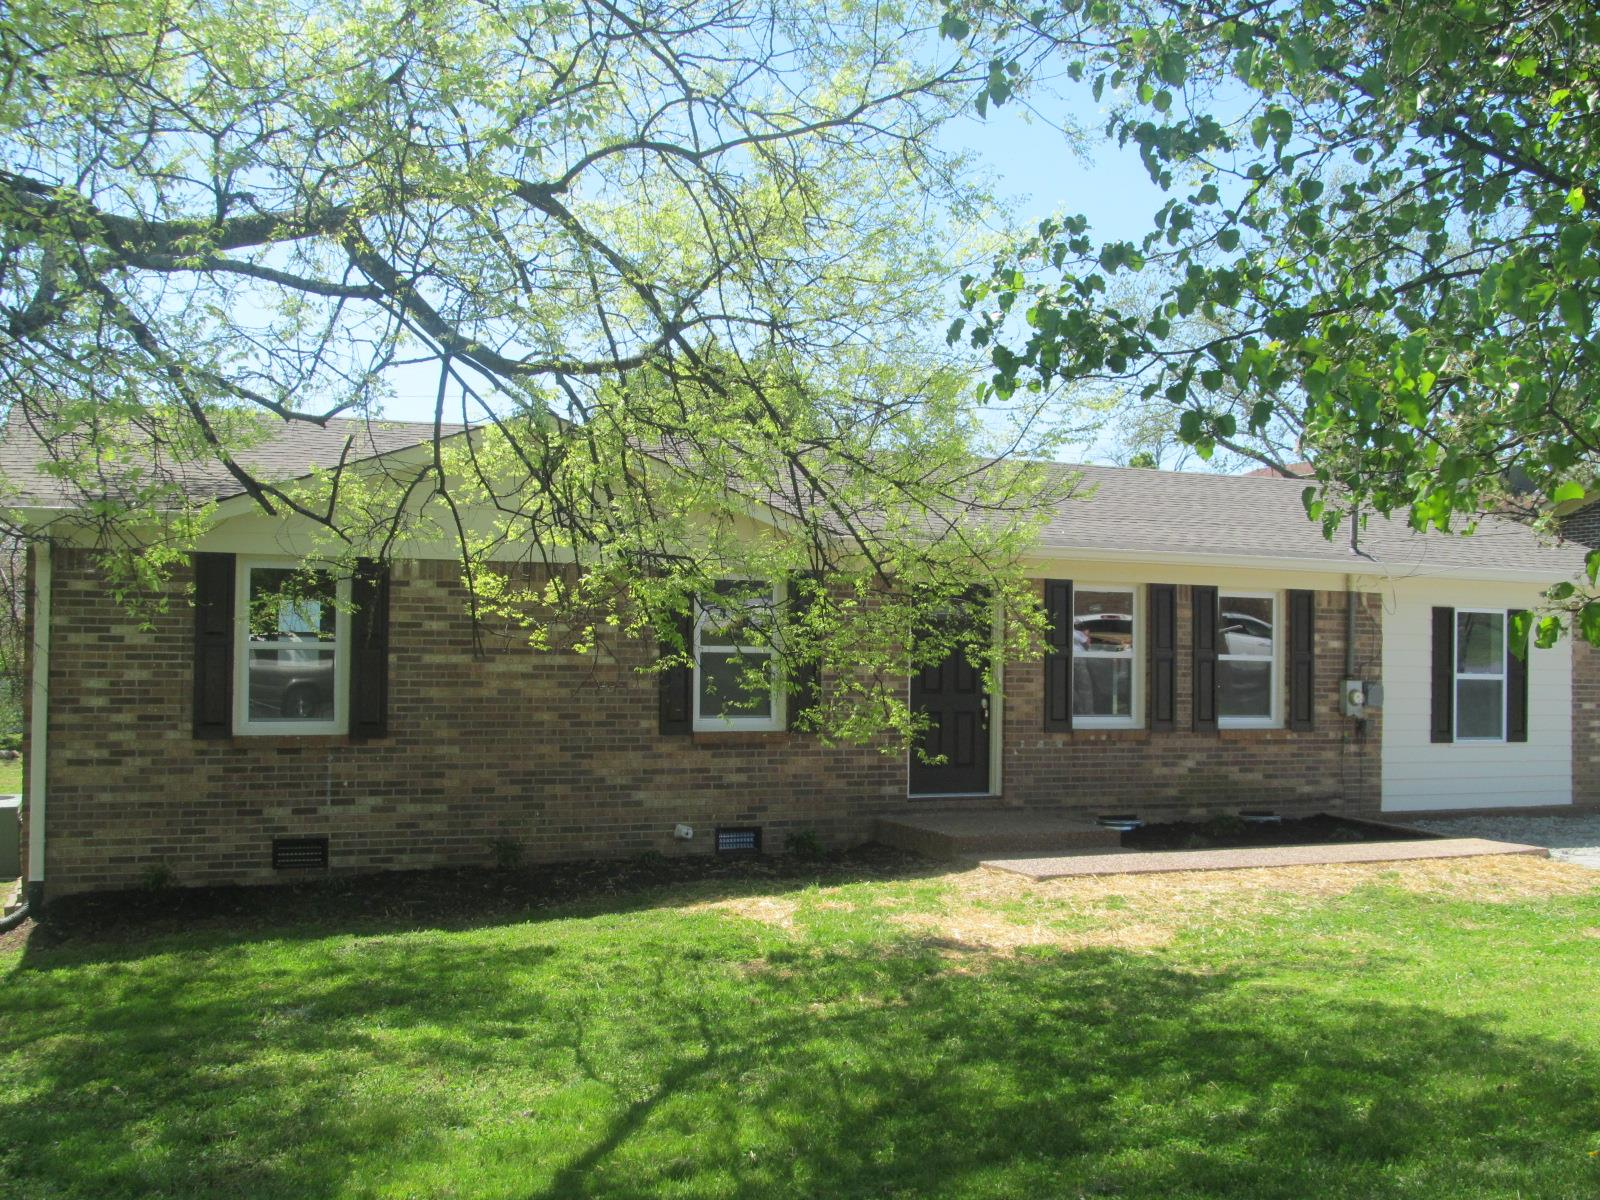 703 Forest St, Lewisburg, TN 37091